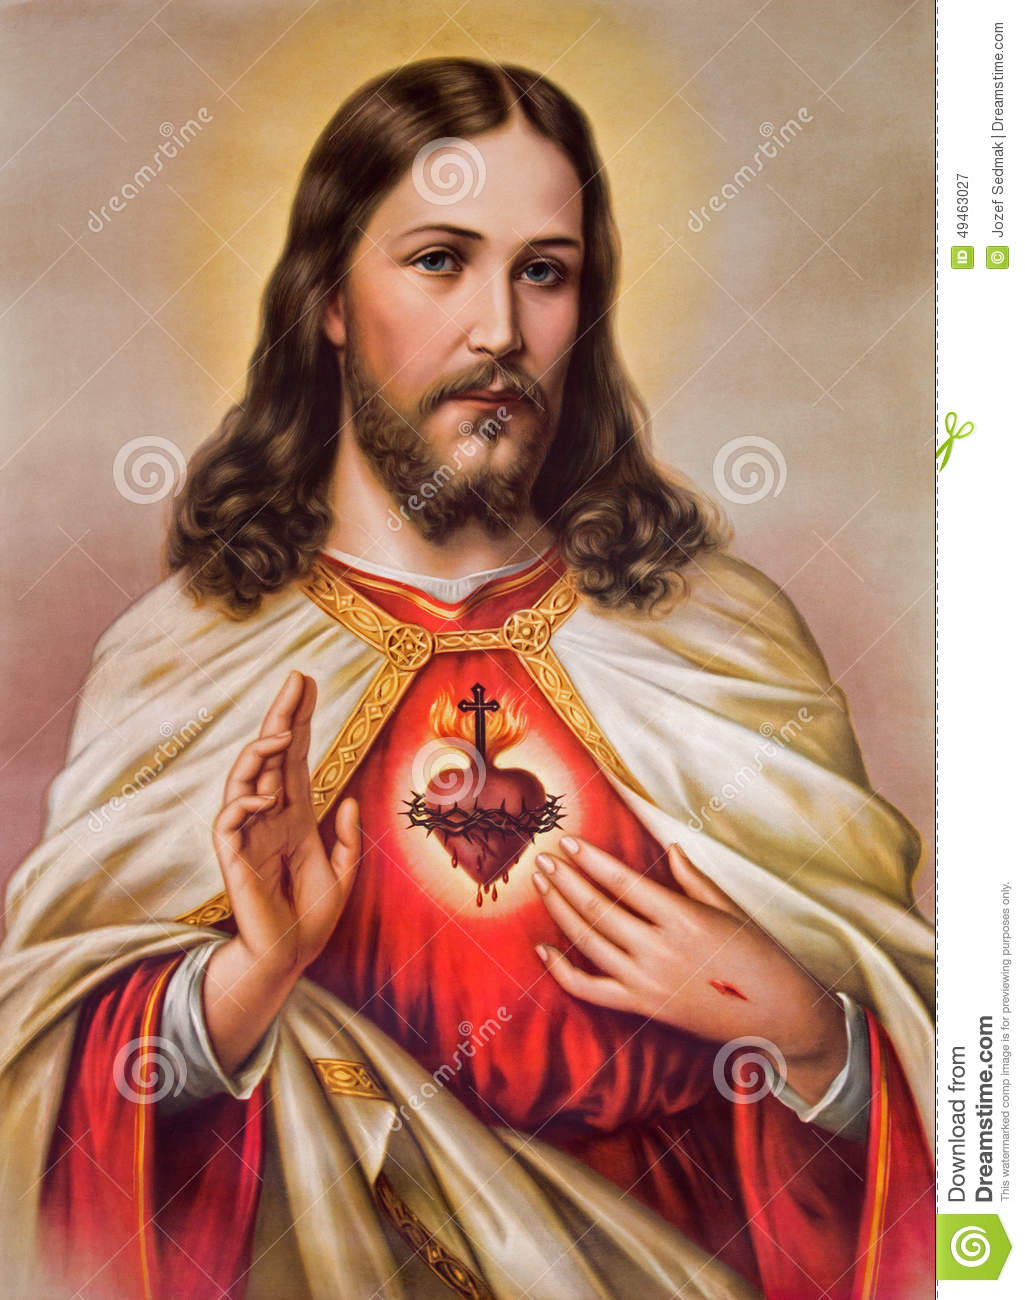 Typical Catholic Image Of Heart Of Jesus Christ Stock